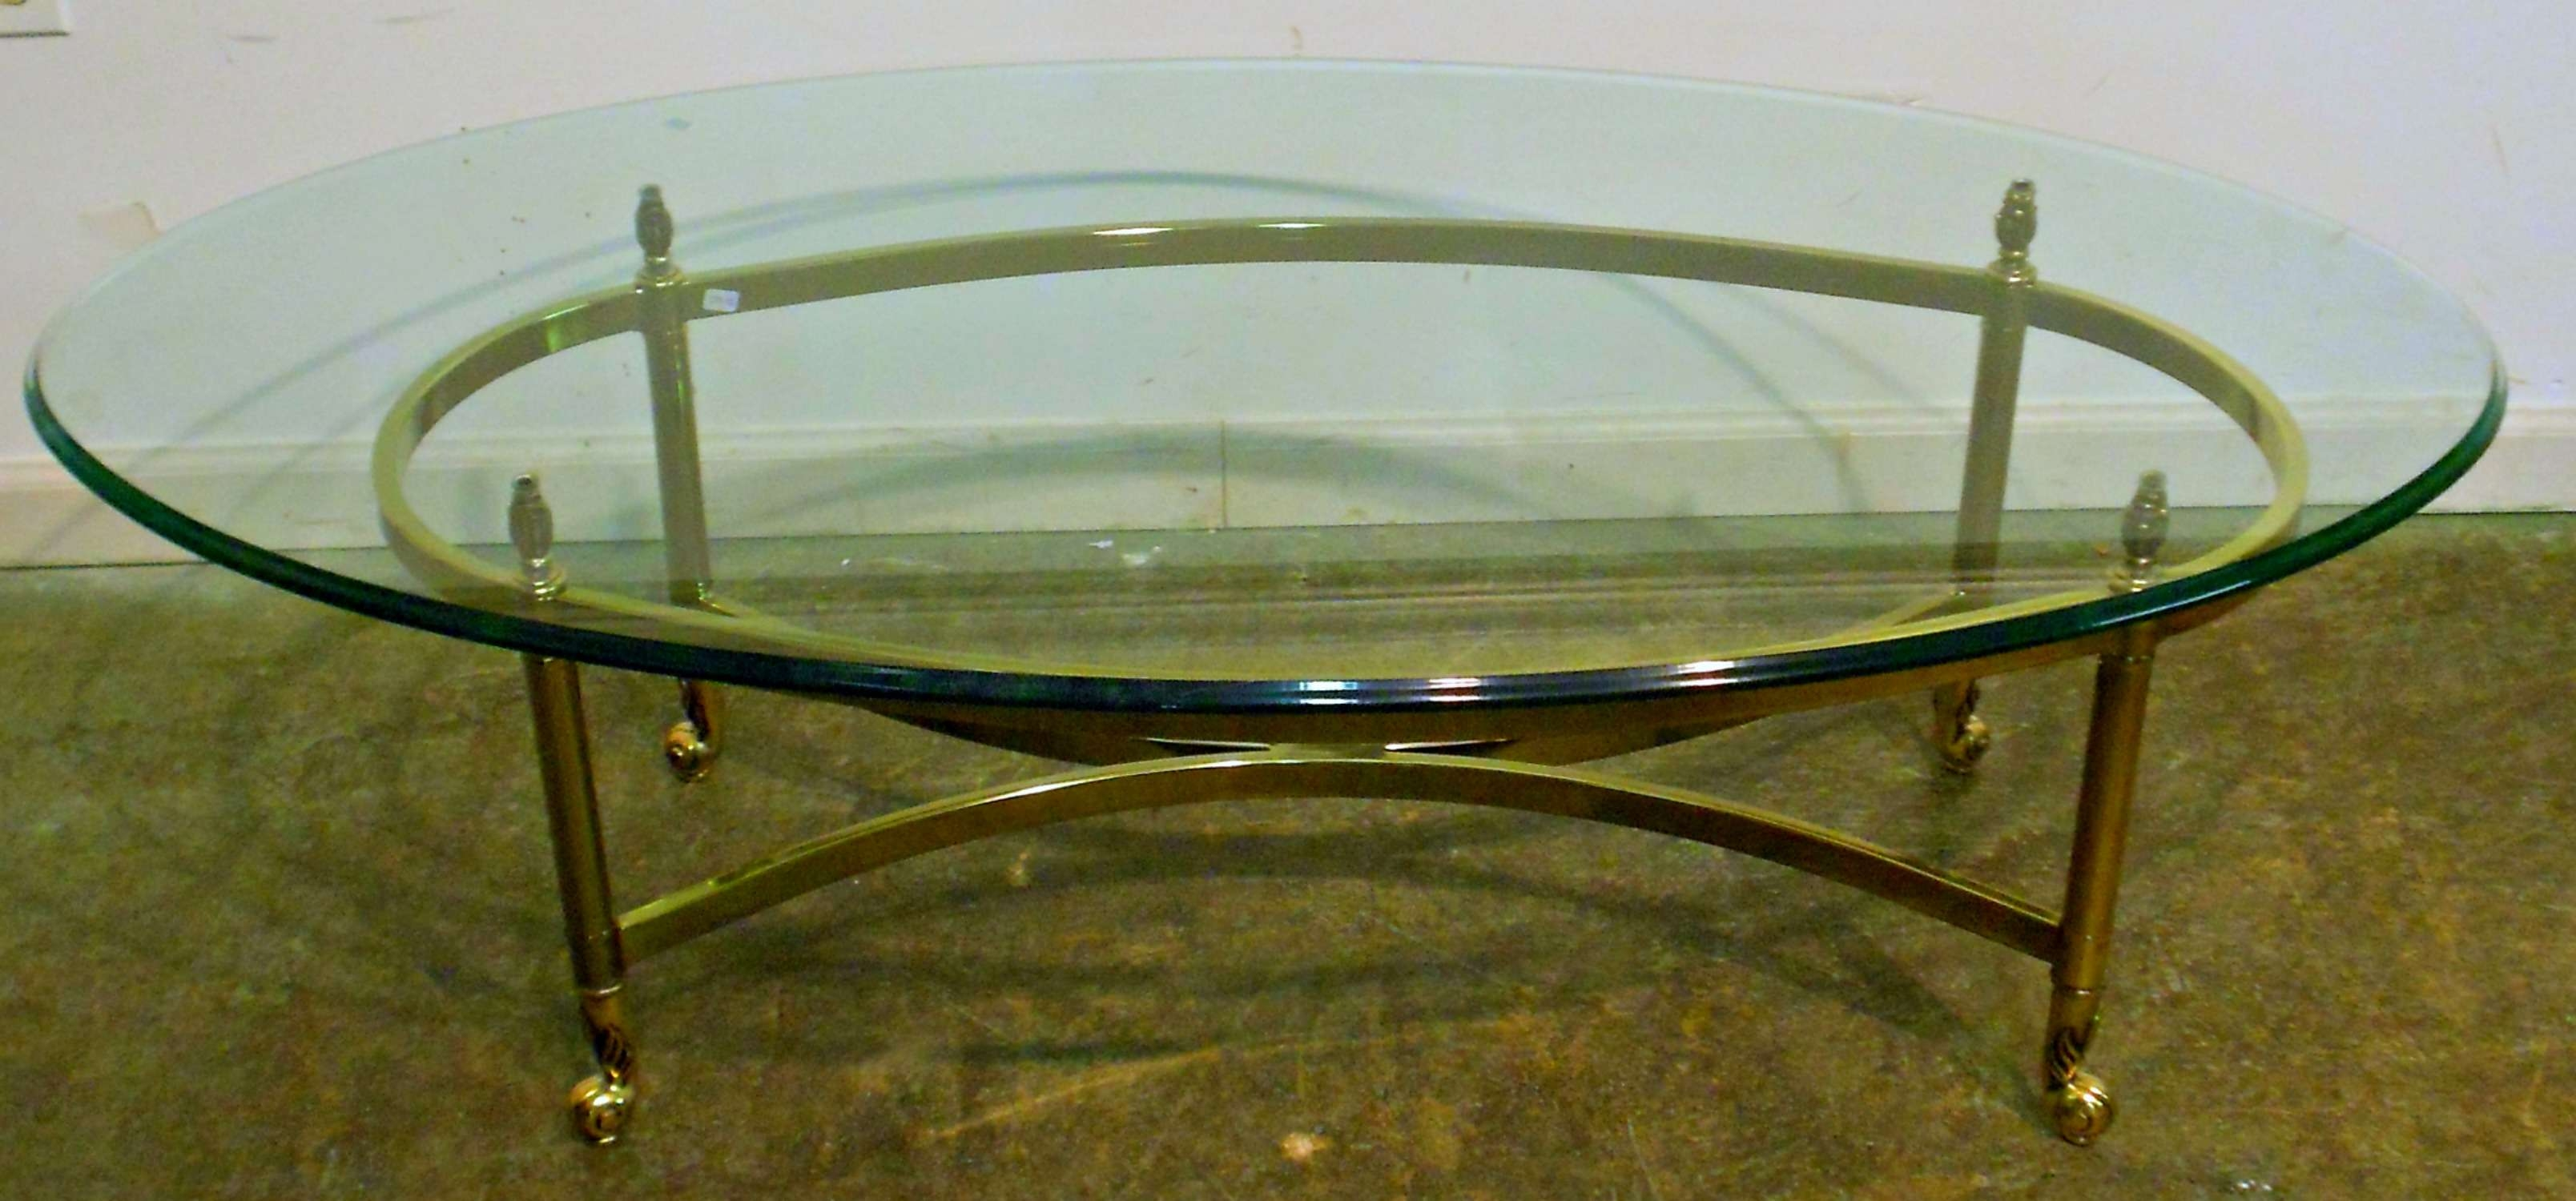 Trendy Oval Glass Coffee Tables With Regard To Oval Glass Top Coffee Table With Brass Frame And Wheels For (View 16 of 20)